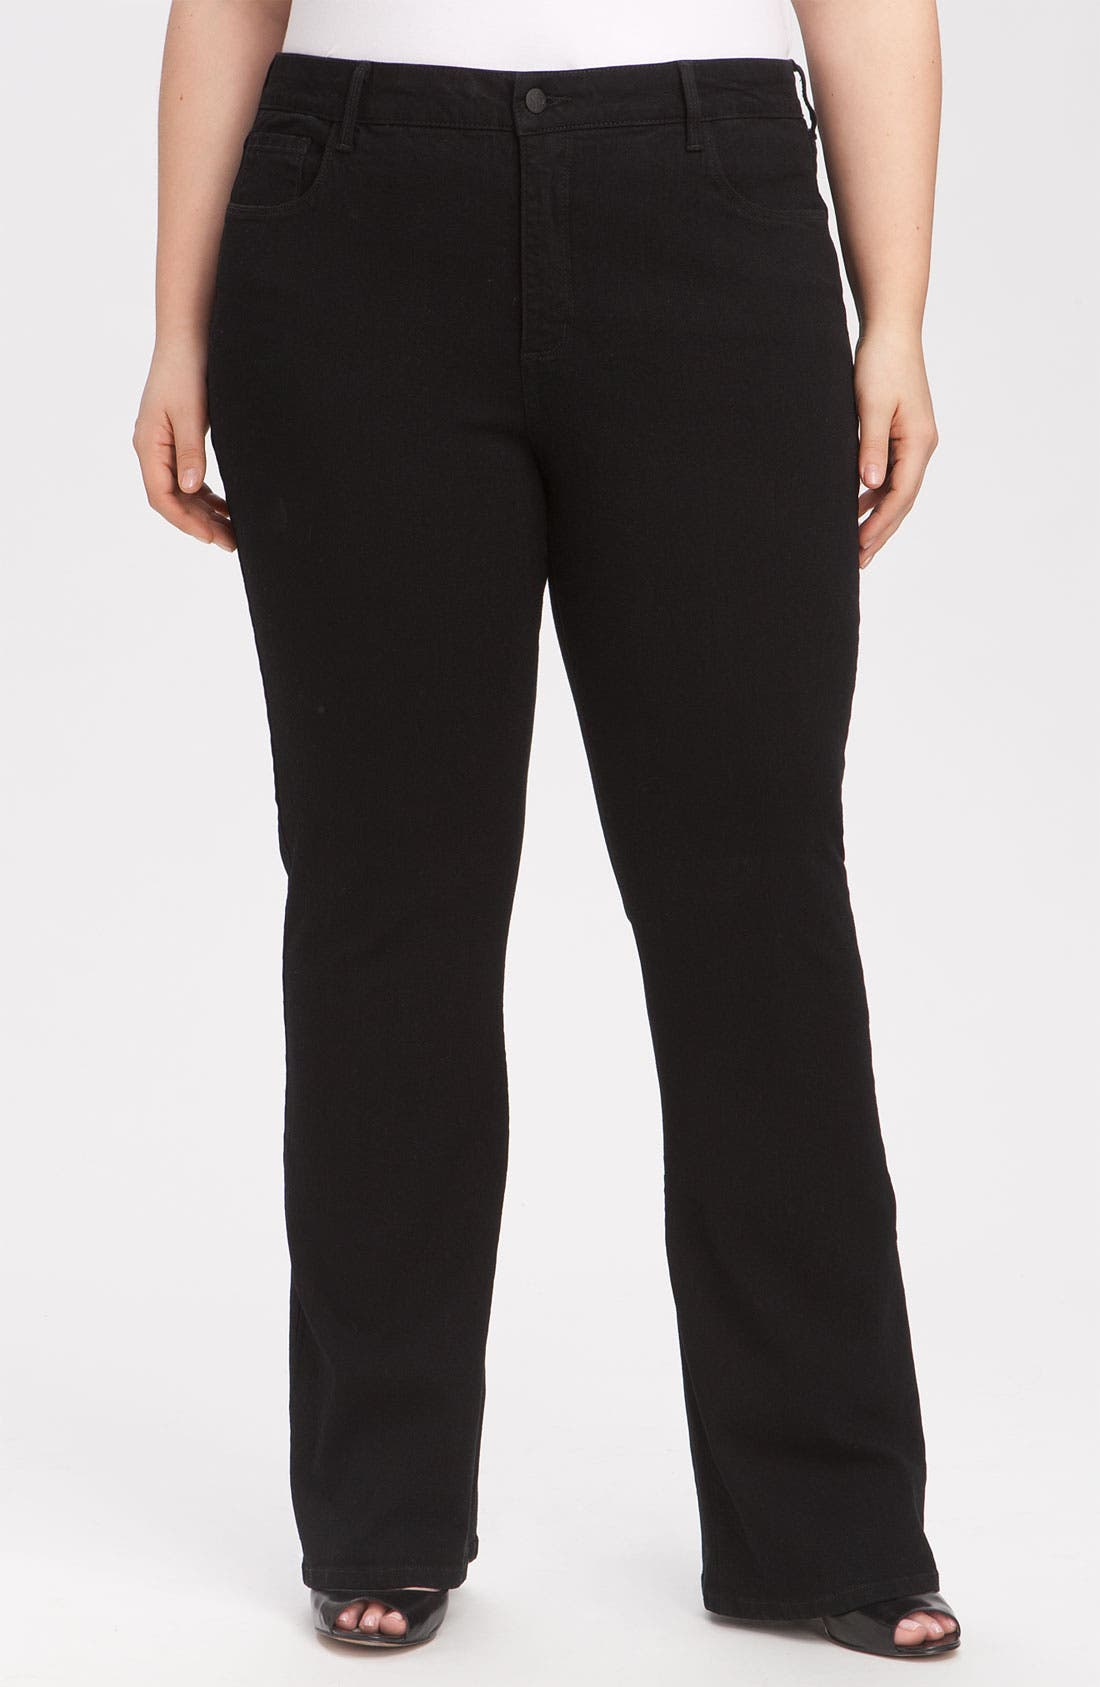 Alternate Image 1 Selected - NYDJ 'Barbara' Stretch Bootcut Jeans (Black) (Plus Size & Petite Plus)